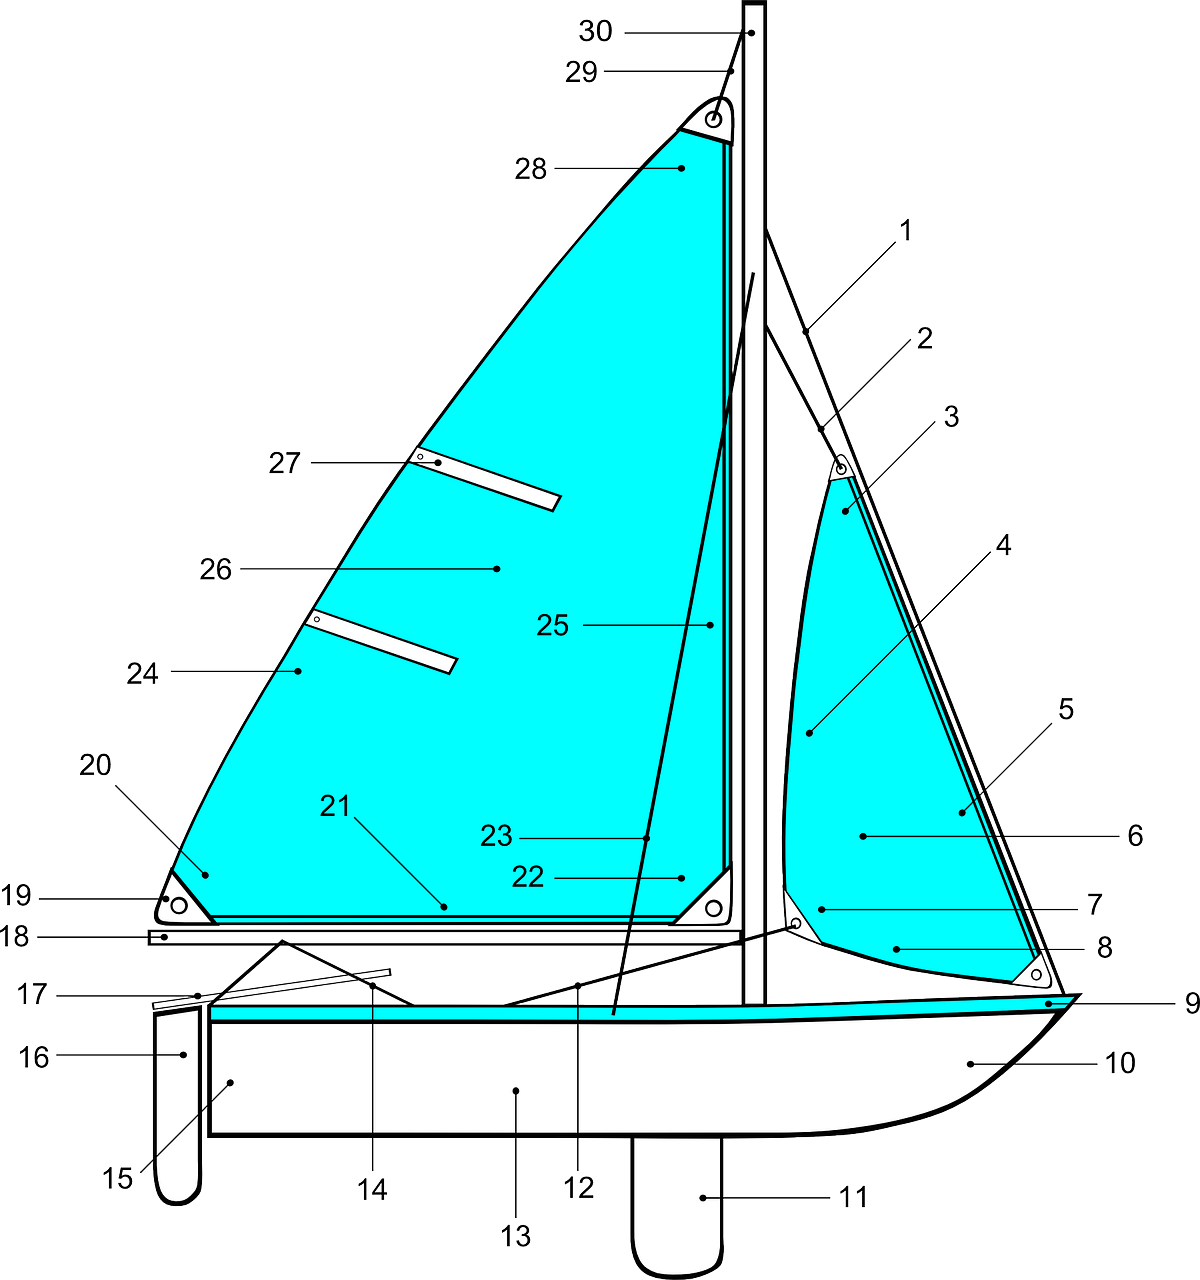 small resolution of boat diagram sailboat sailing points boat boat diagram sailboat sailing points boat